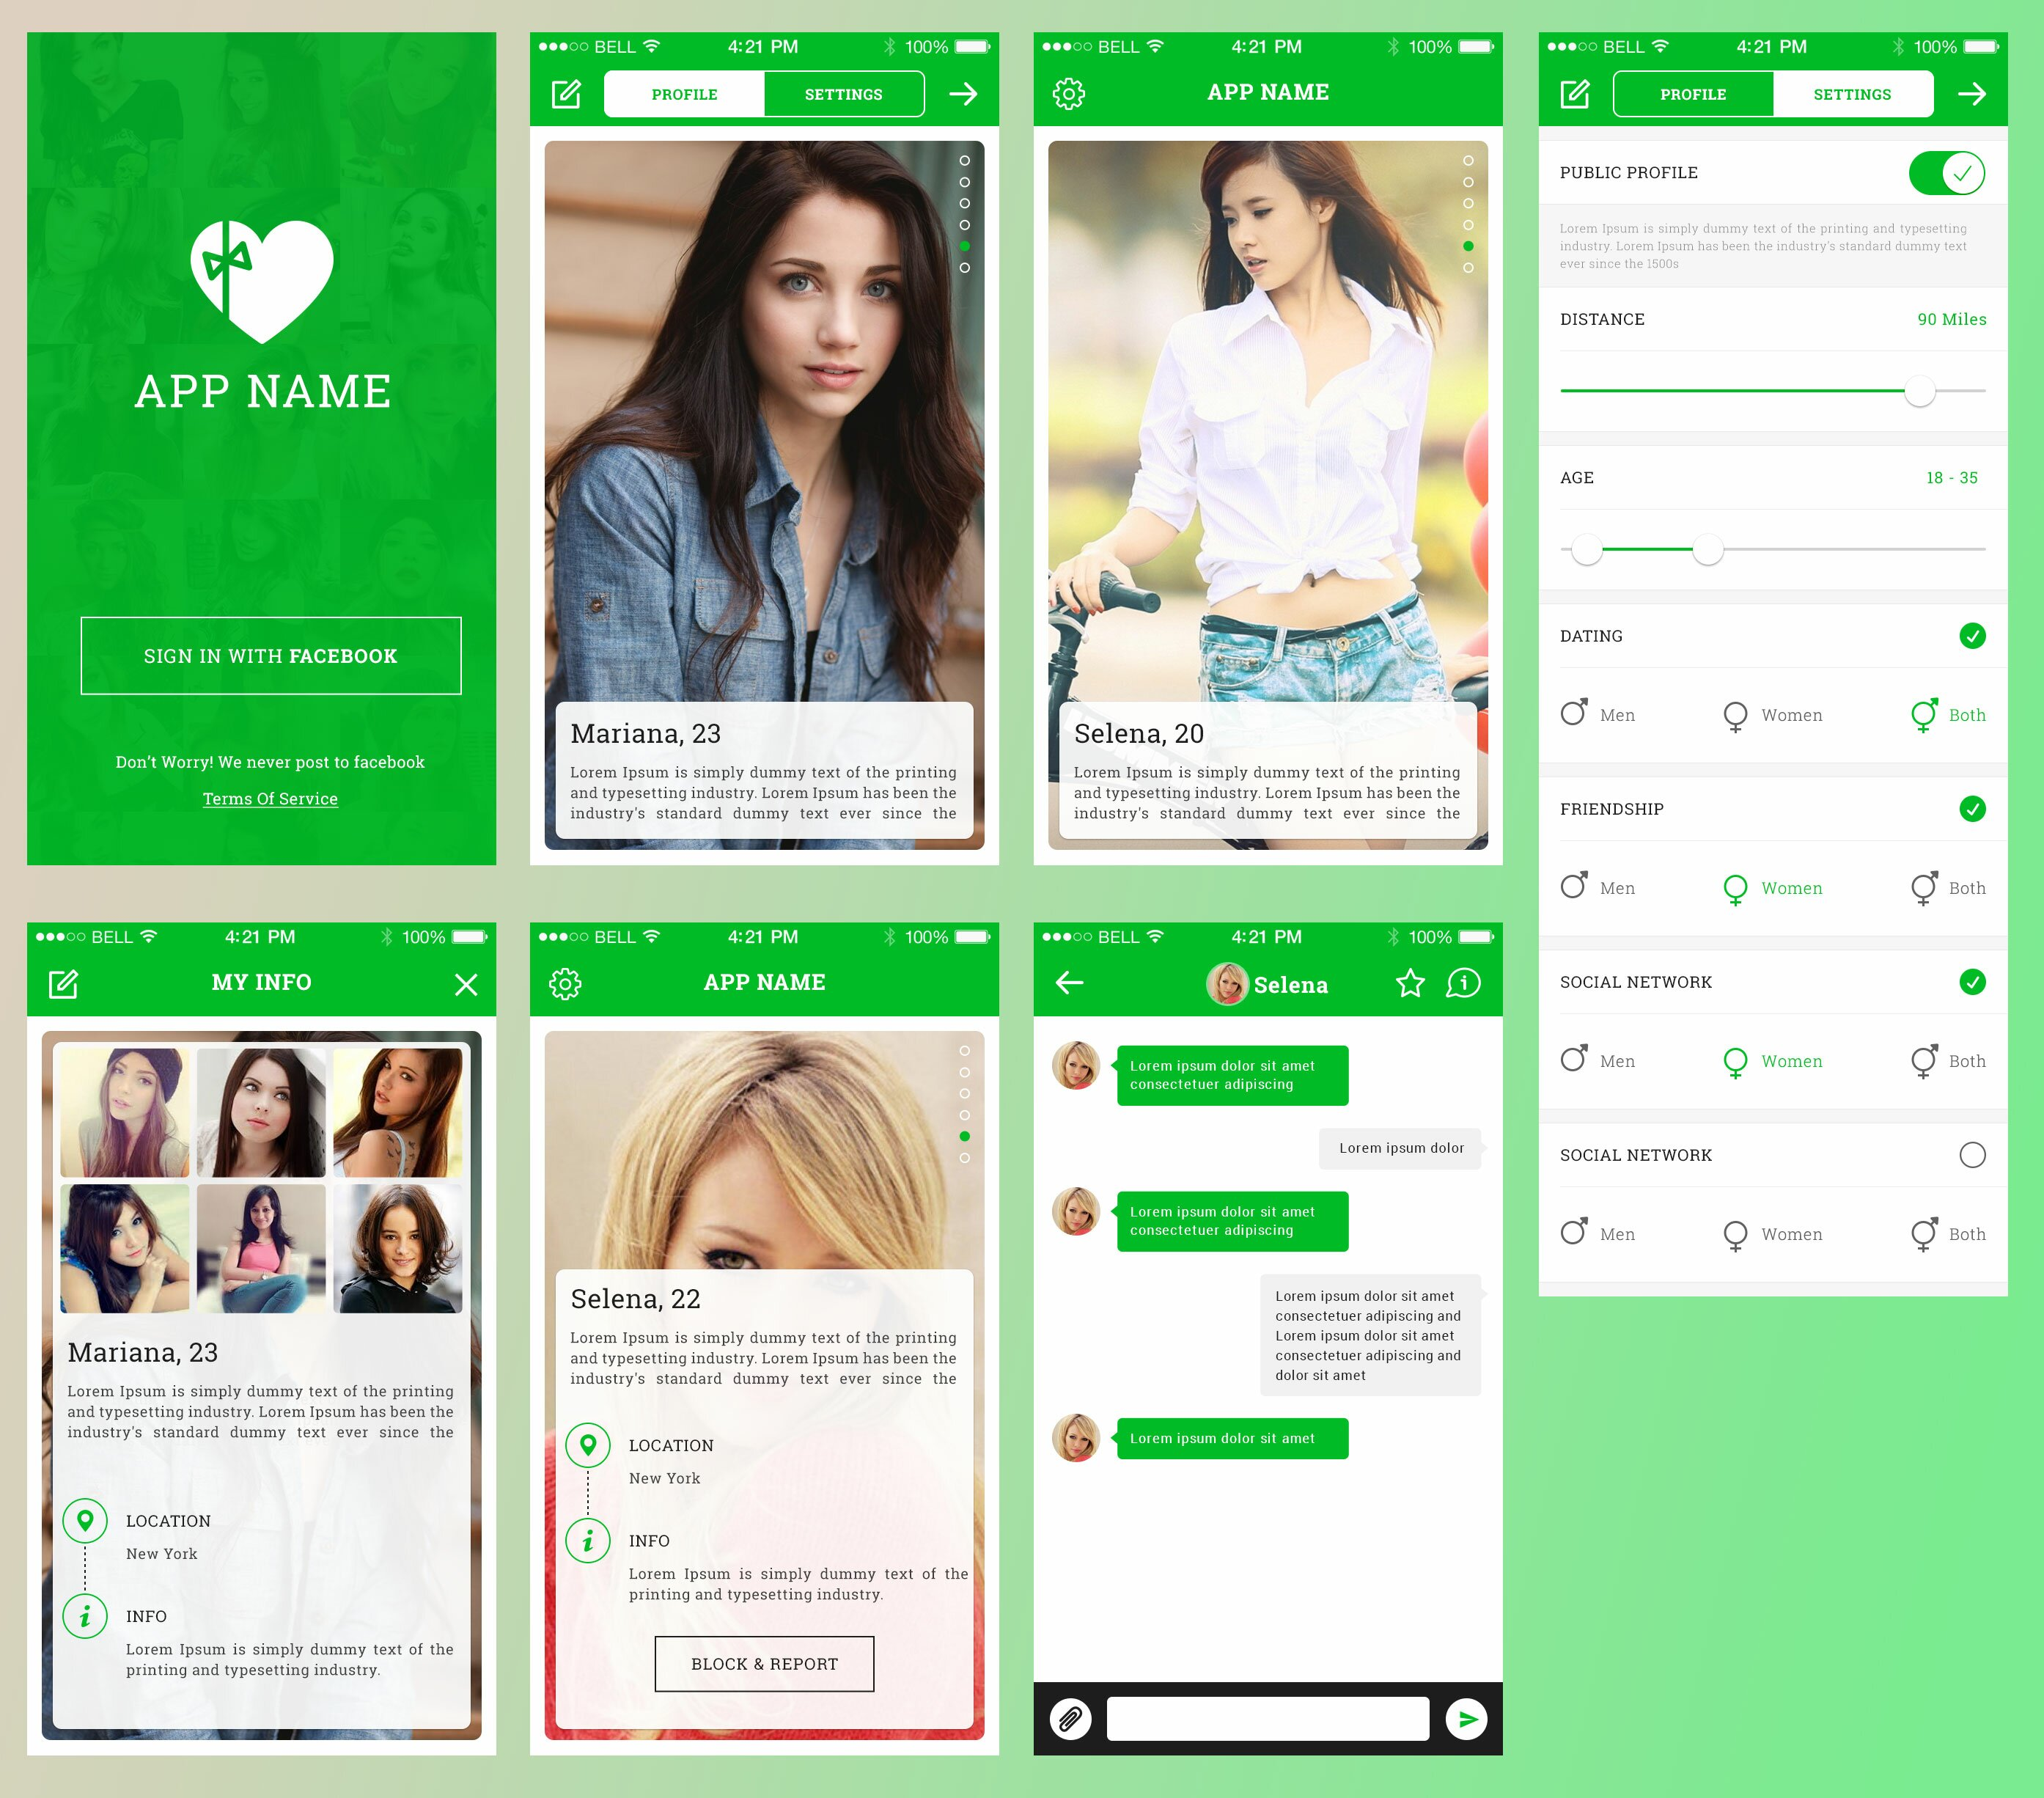 Best dating apps free messaging